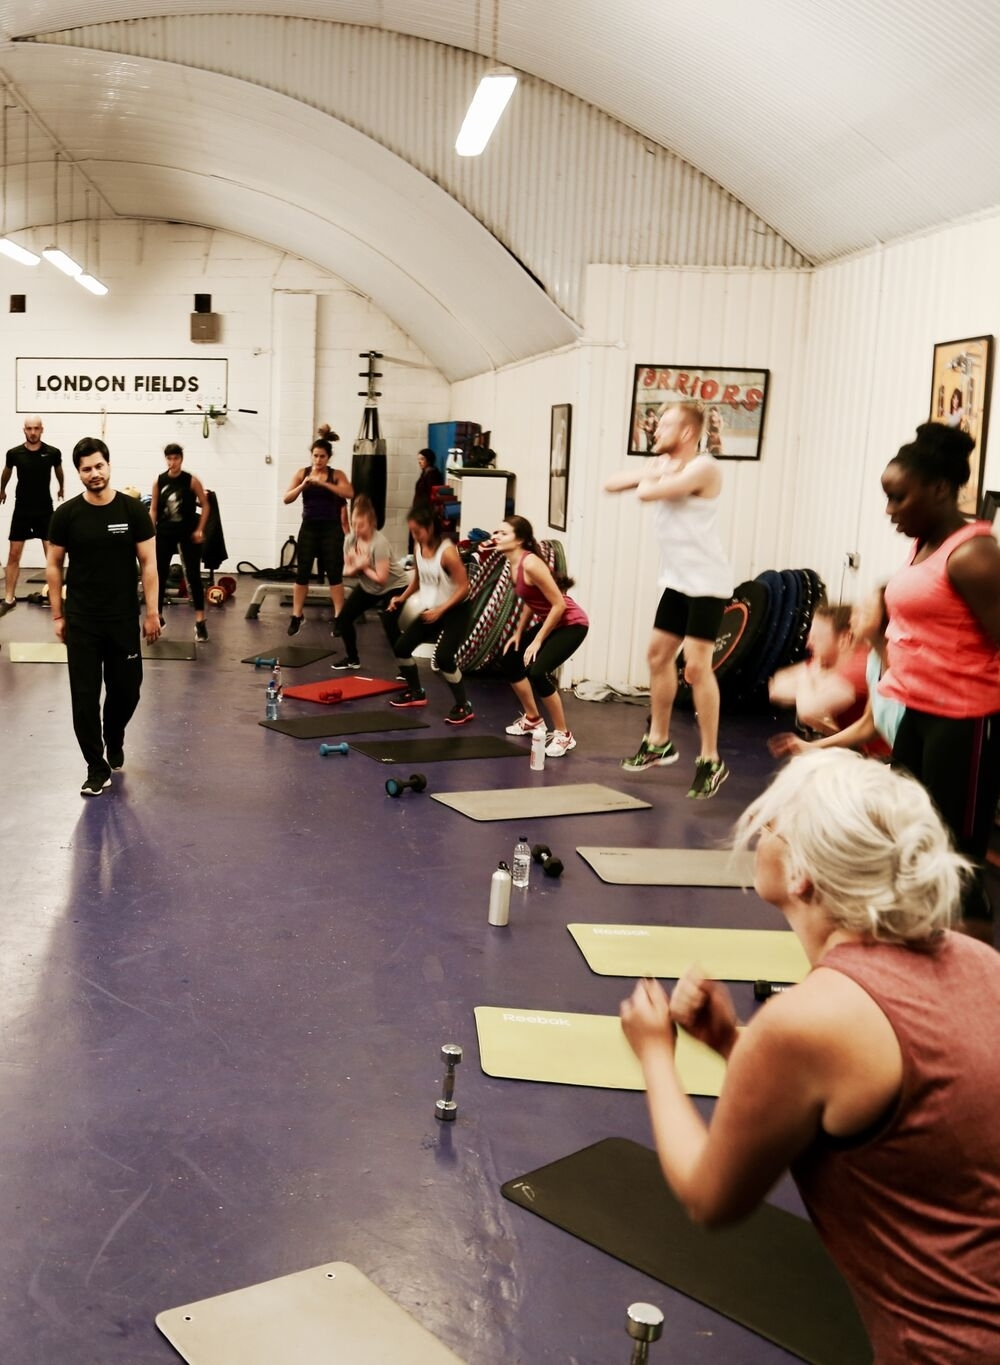 Warriors - Warriors come out to play! Based on the rigorous training a boxer would go through leading up to a big match, this Rocky-esque class is not for the faint hearted! An excellent body conditioning class with high intensity intervals of cardio work. Our London Fields Warriors bring their A Game and like to be challenged.  Tuesdays 8pm w/Sapan (60 mins) £5 drop-in, included in the Class PassLevel: All levels are welcome, just be prepared for a hard workout and you will be surprised at what you can do!